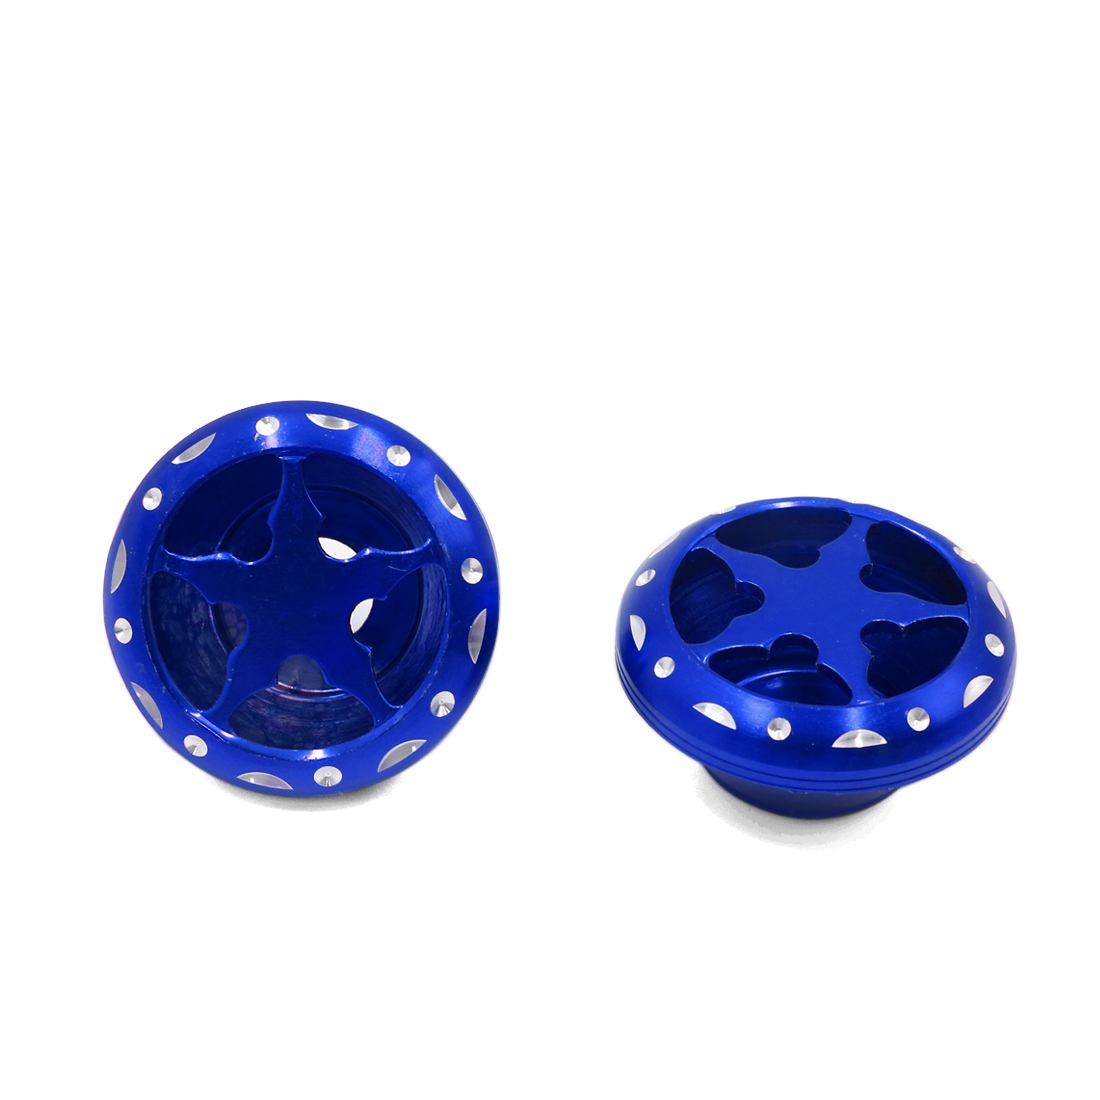 2Pcs Blue Metal Motorcycle Fork Cup Front-wheel Damping Drop Resistance Cups